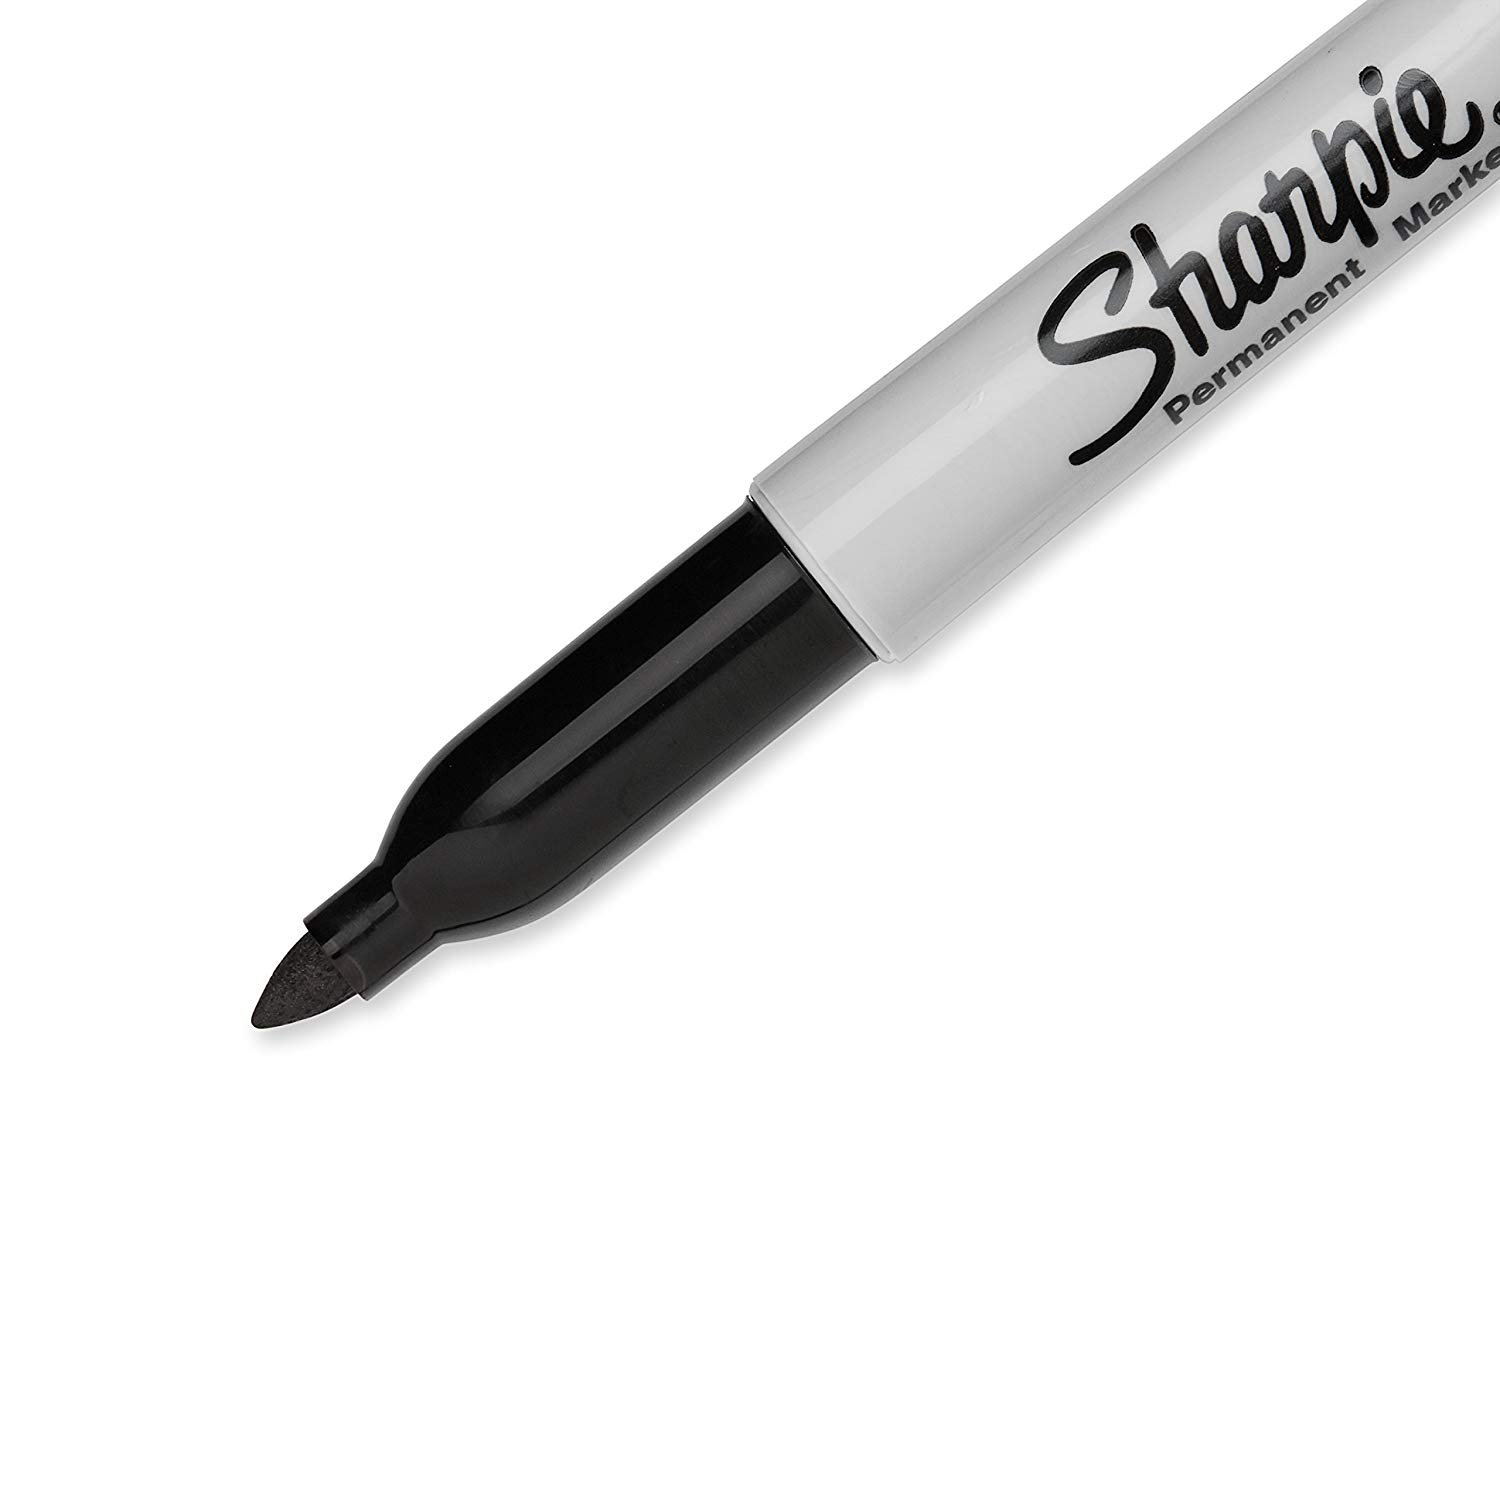 Sharpie Permanent Markers, Fine Point, Black, 36 Count,5 Pack by Sharpie (Image #4)